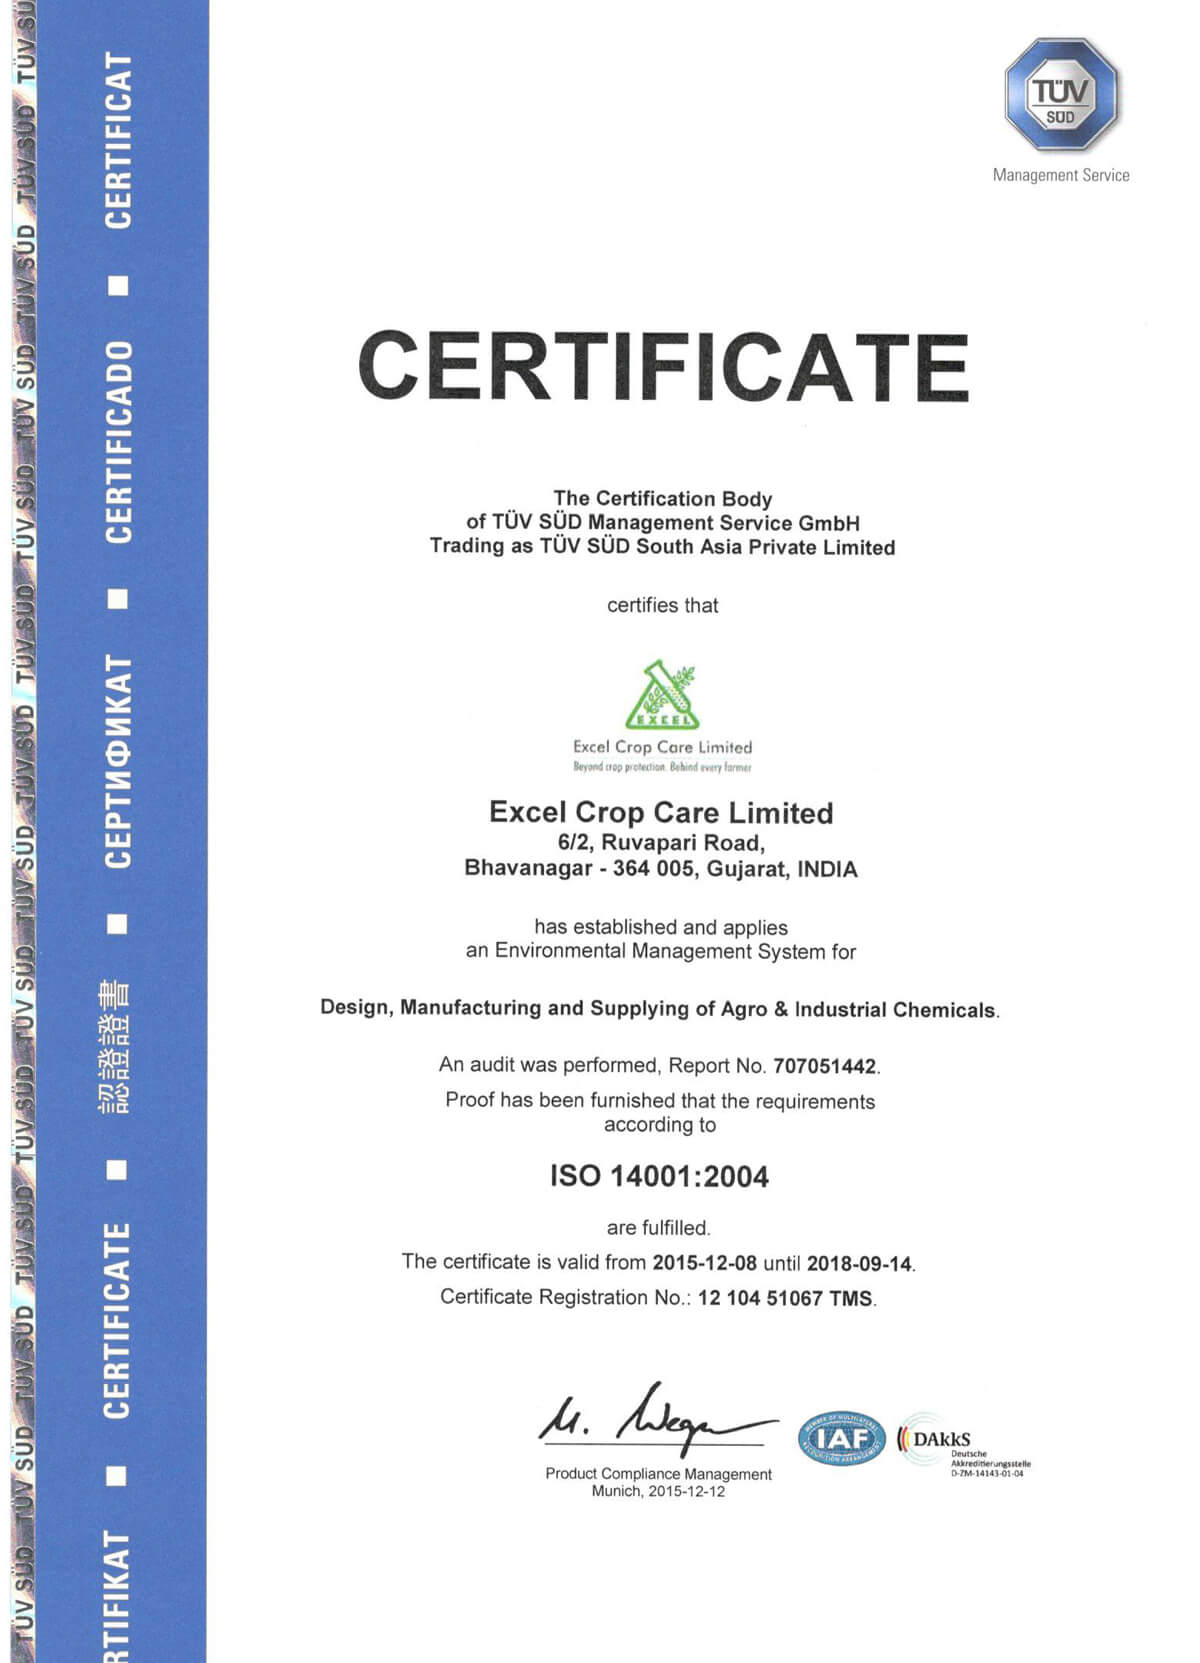 Excel Crop Care Limited - Beyond crop protection  Behind